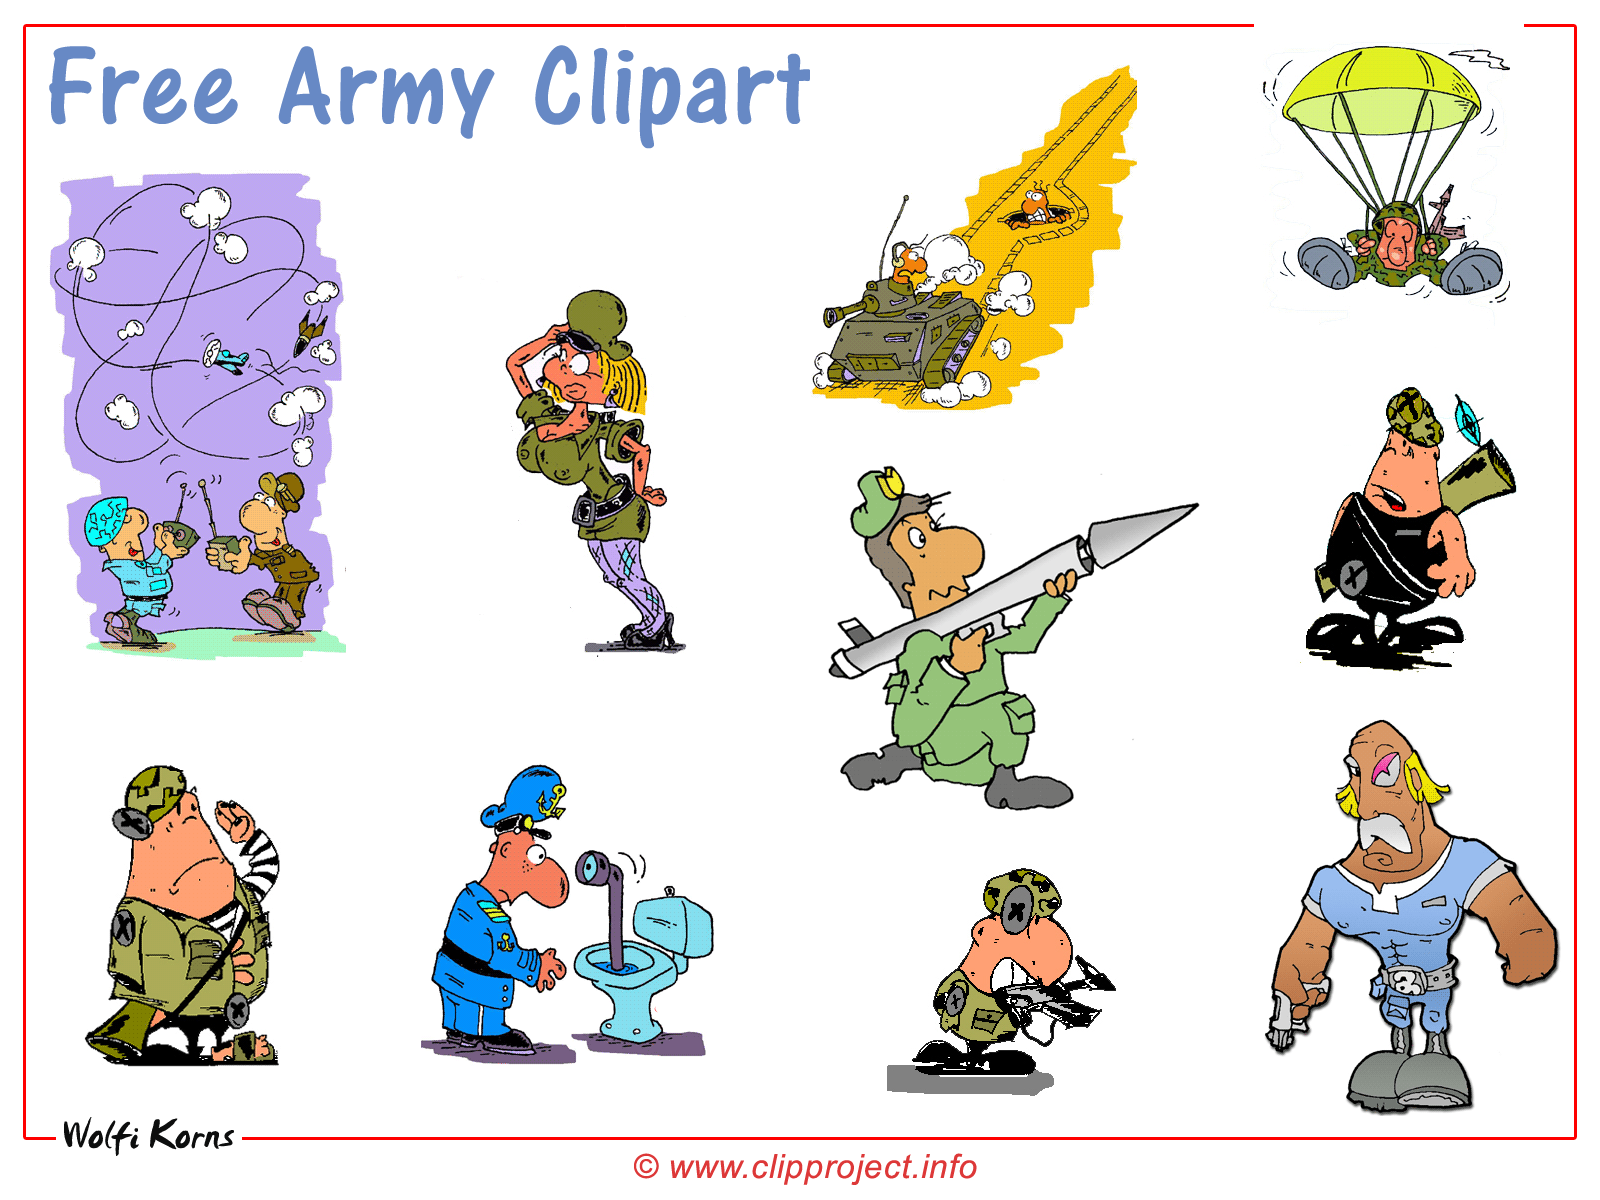 Aarmy free clipart wallpaper 1600x1200 px.